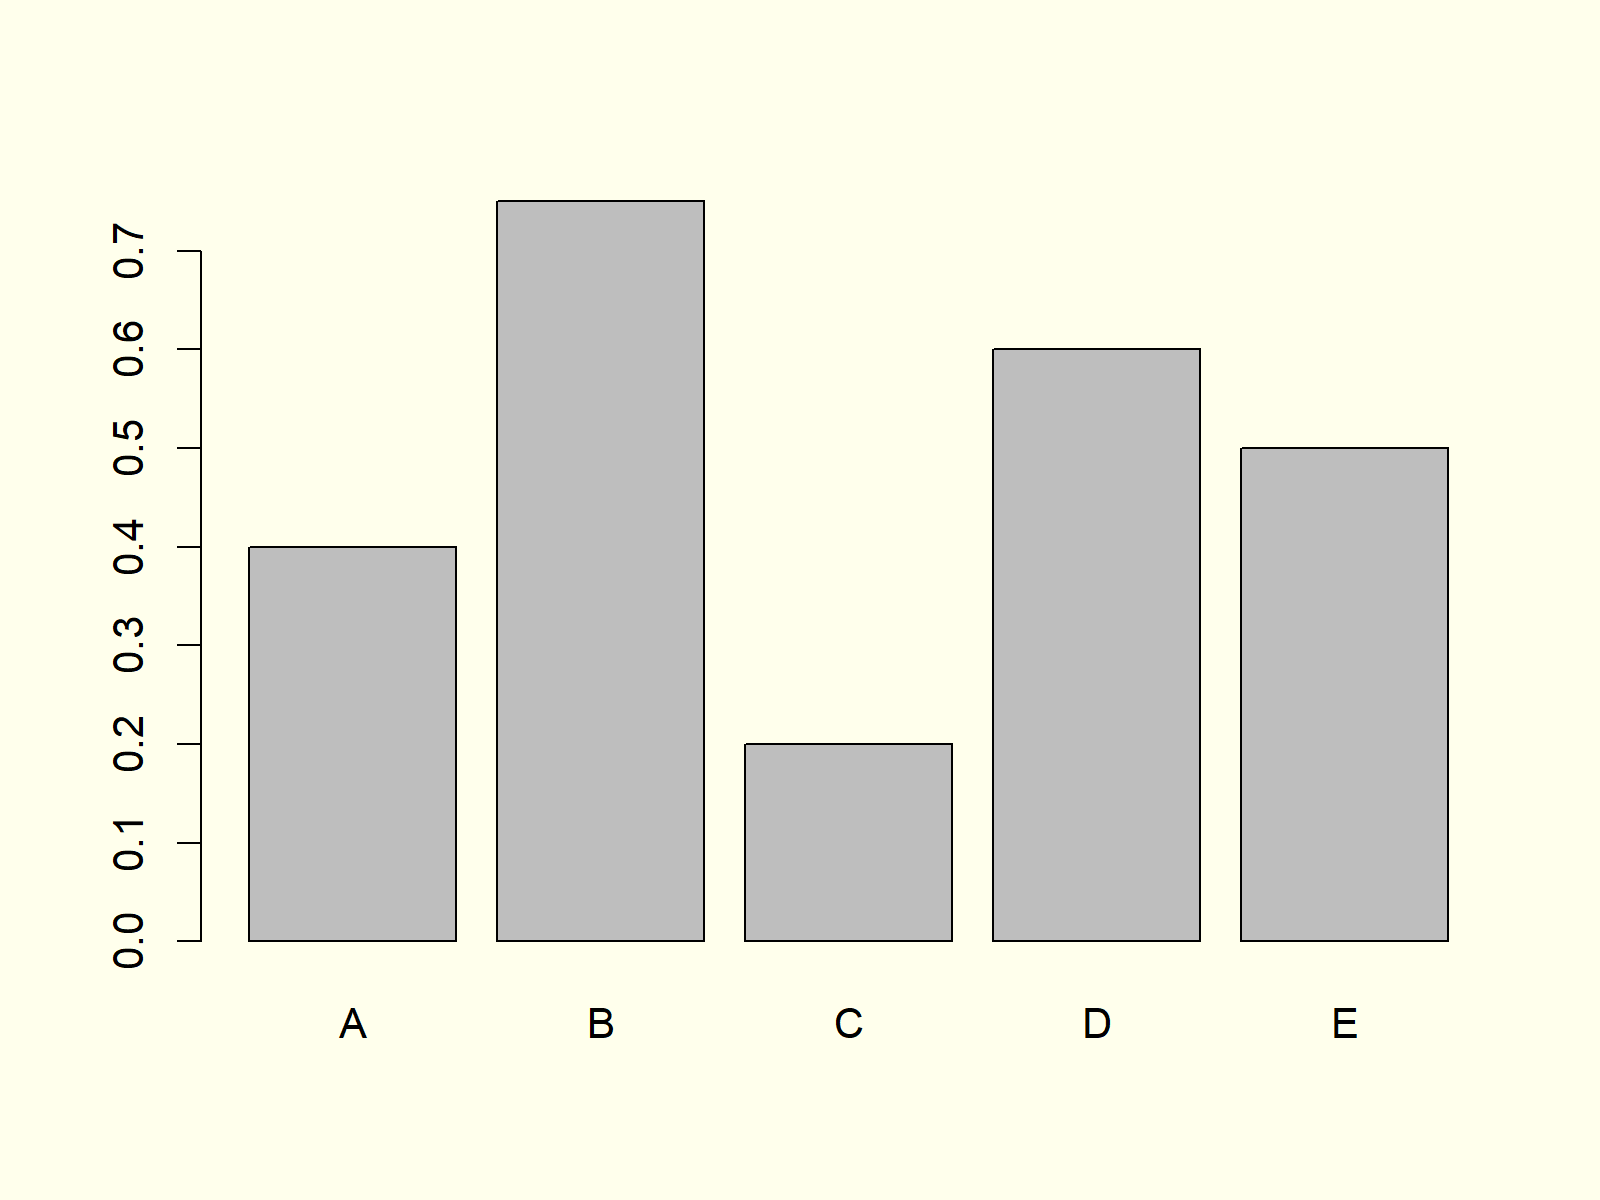 Example 4 Barchart in R Programming